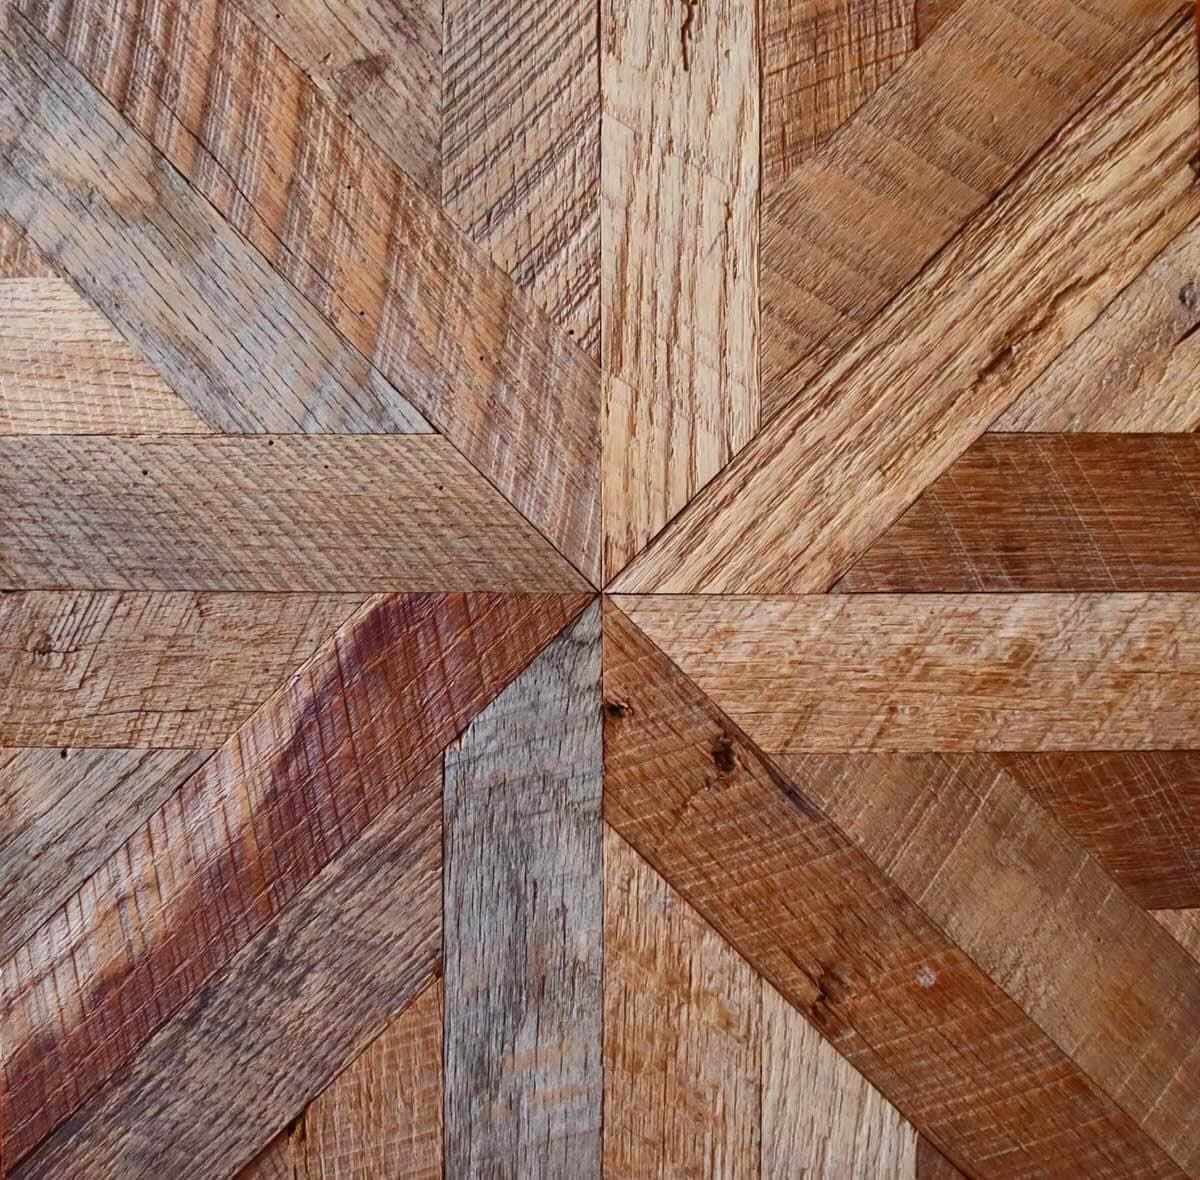 Engineered reclaimed wood tile in star pattern.